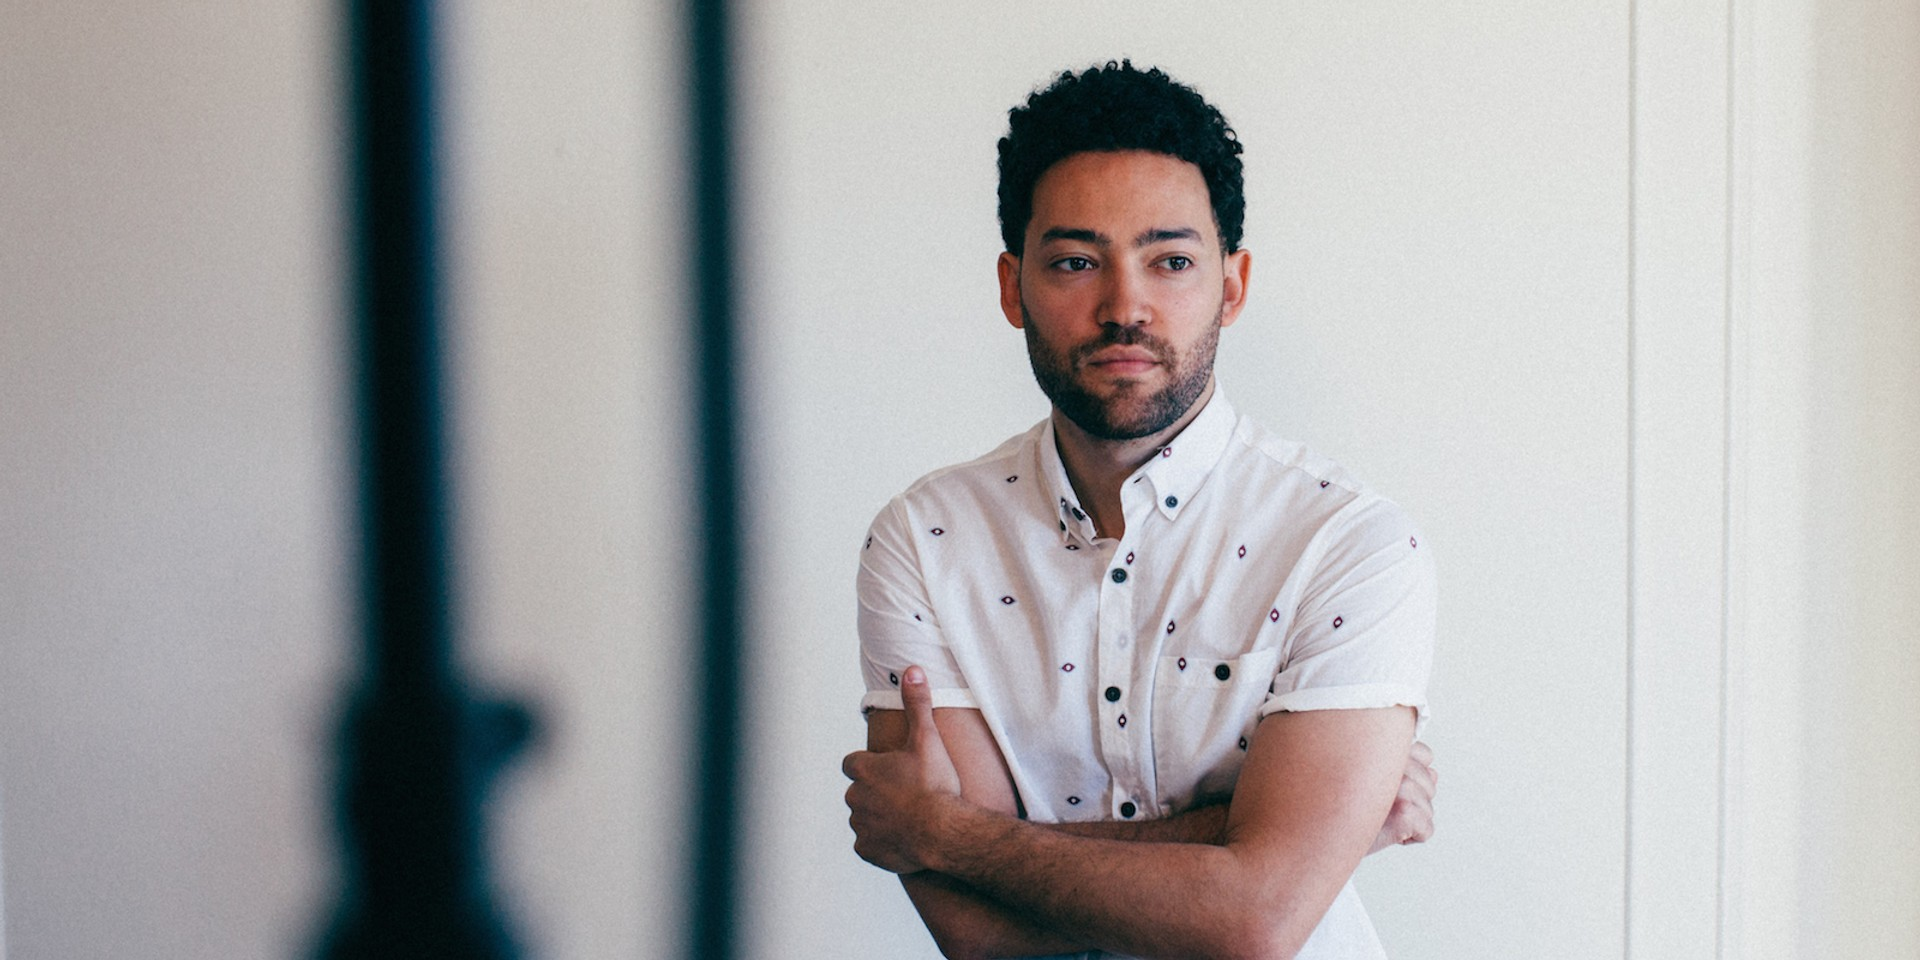 WATCH: Taylor McFerrin talks about his anticipated new album, his recording process and more